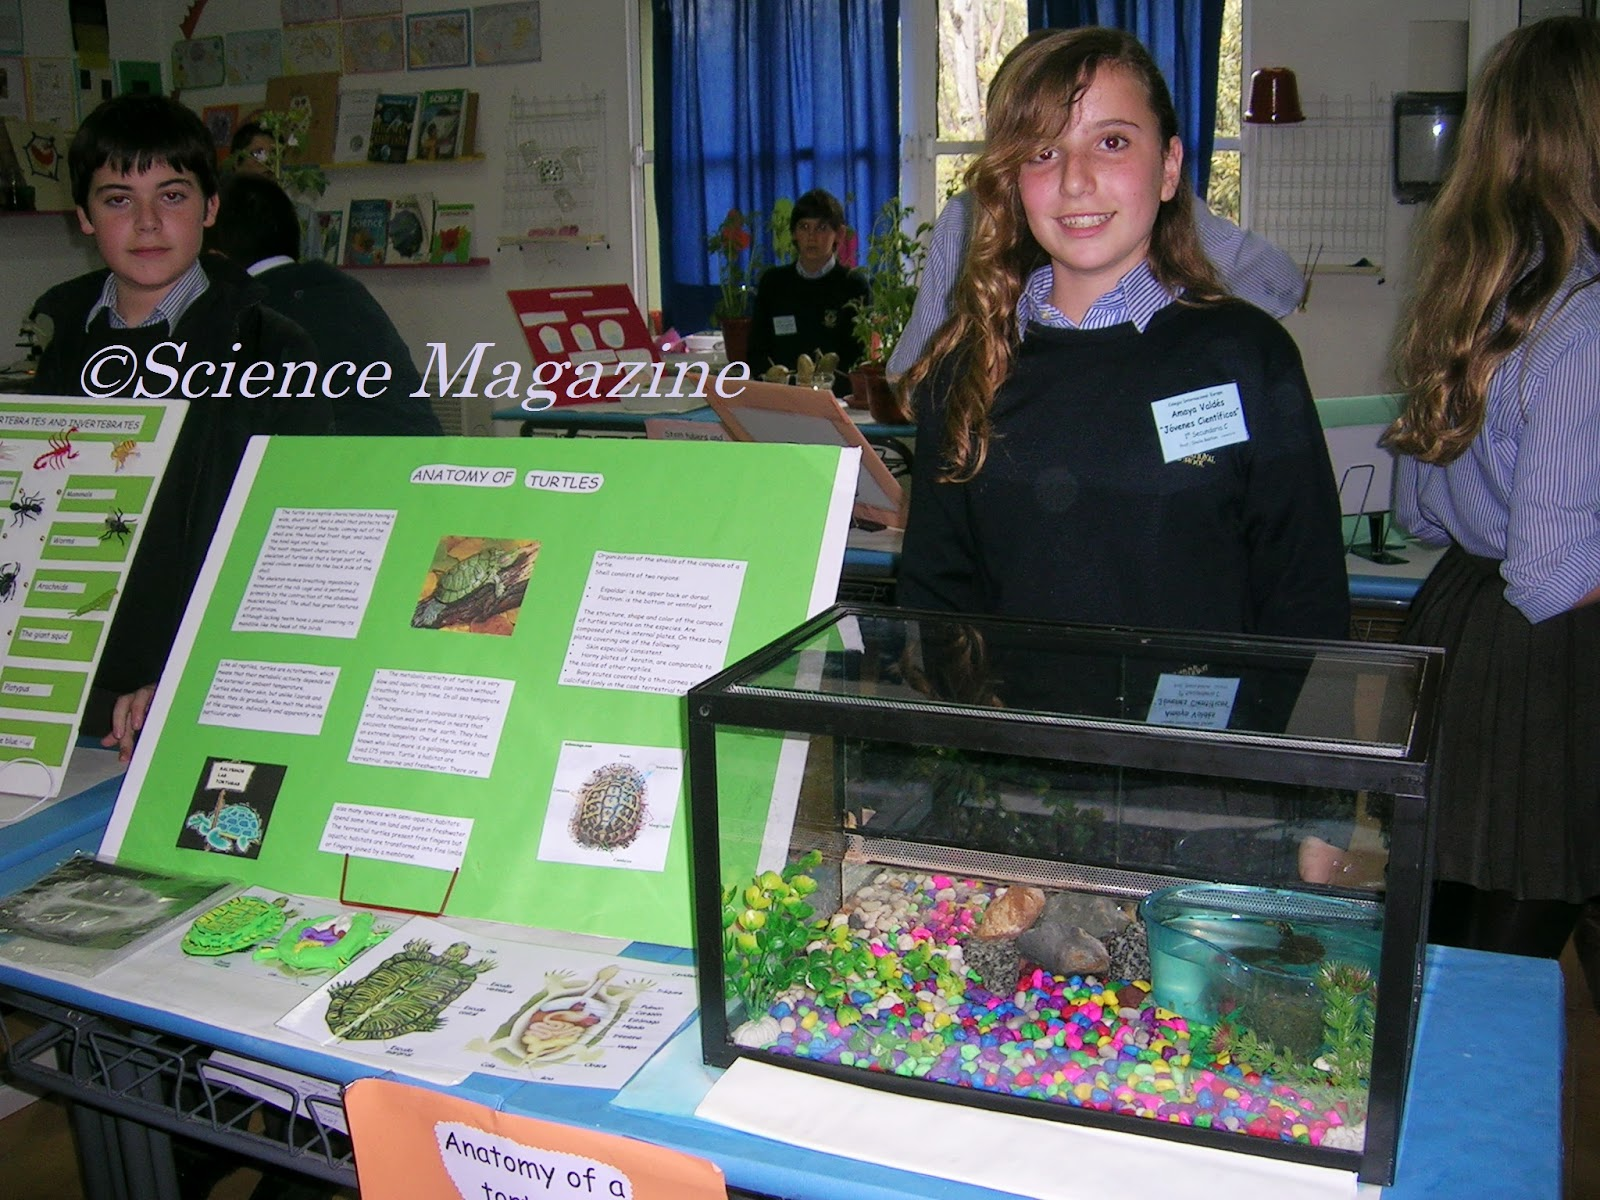 Science Magazine: SCIENCE FAIR PROJECT - TURTLES - By Amaya Valdés